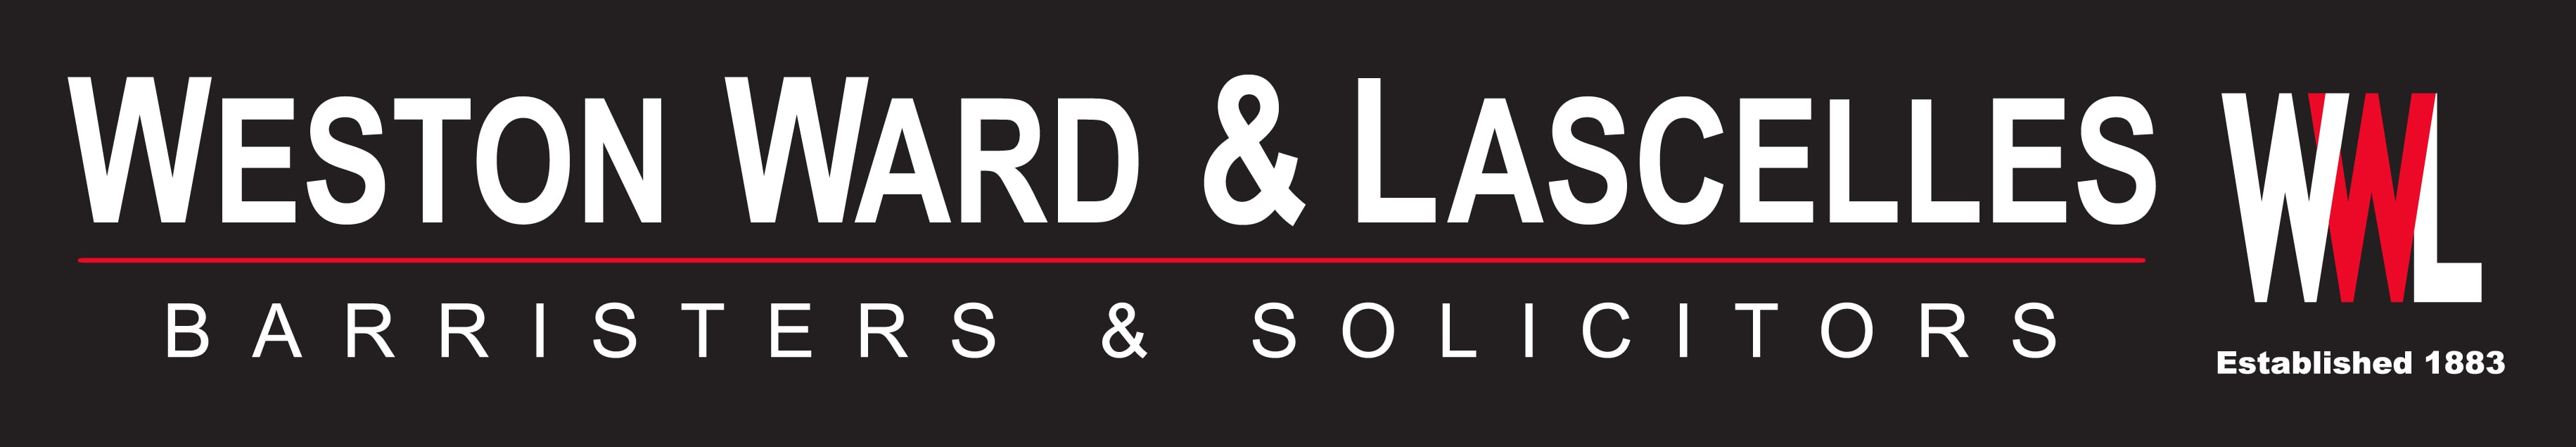 Weston Ward & Lascelles Logo - Leading Lawyers Christchurch